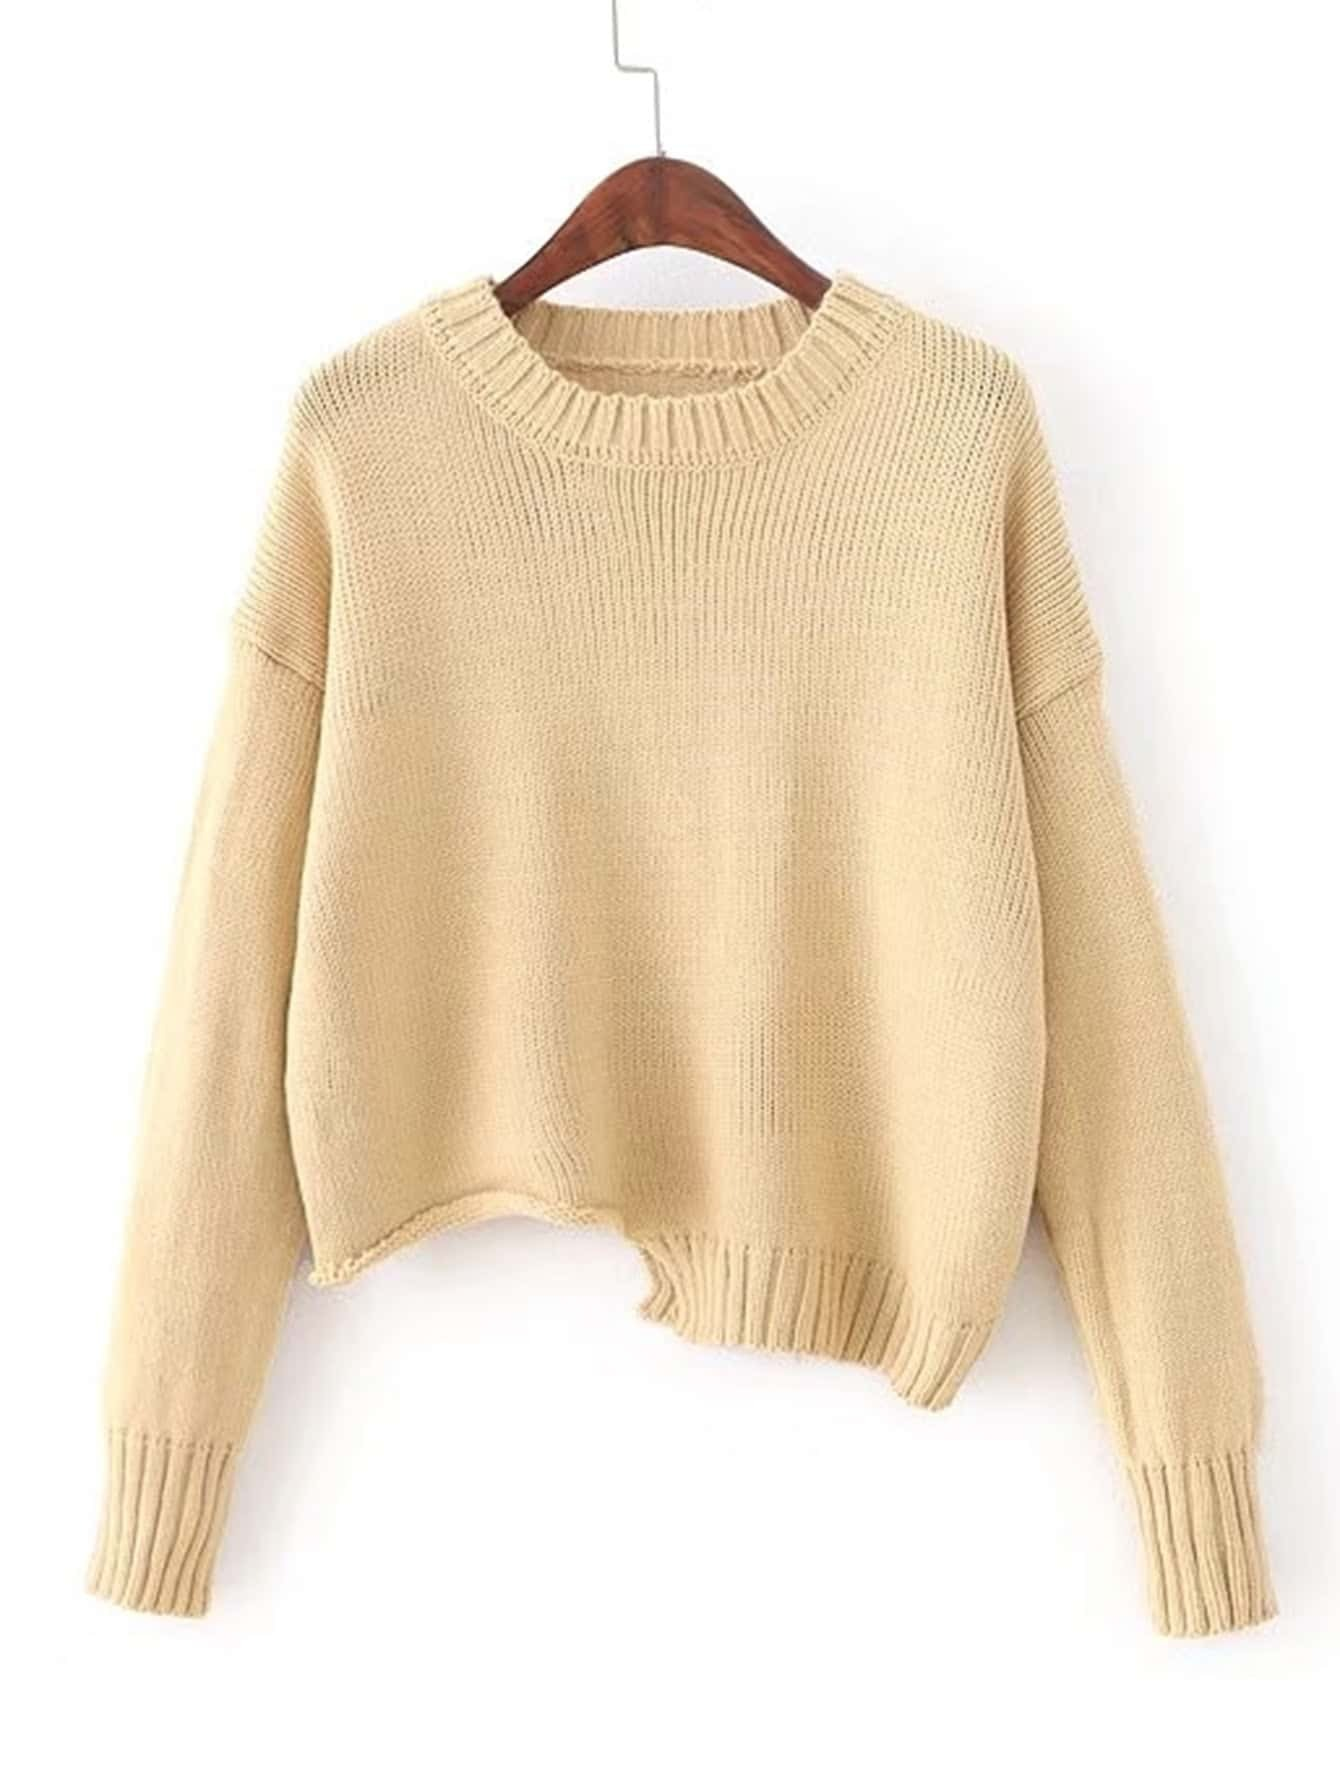 Ribbed Trim Asymmetrical Sweater sweater171009204